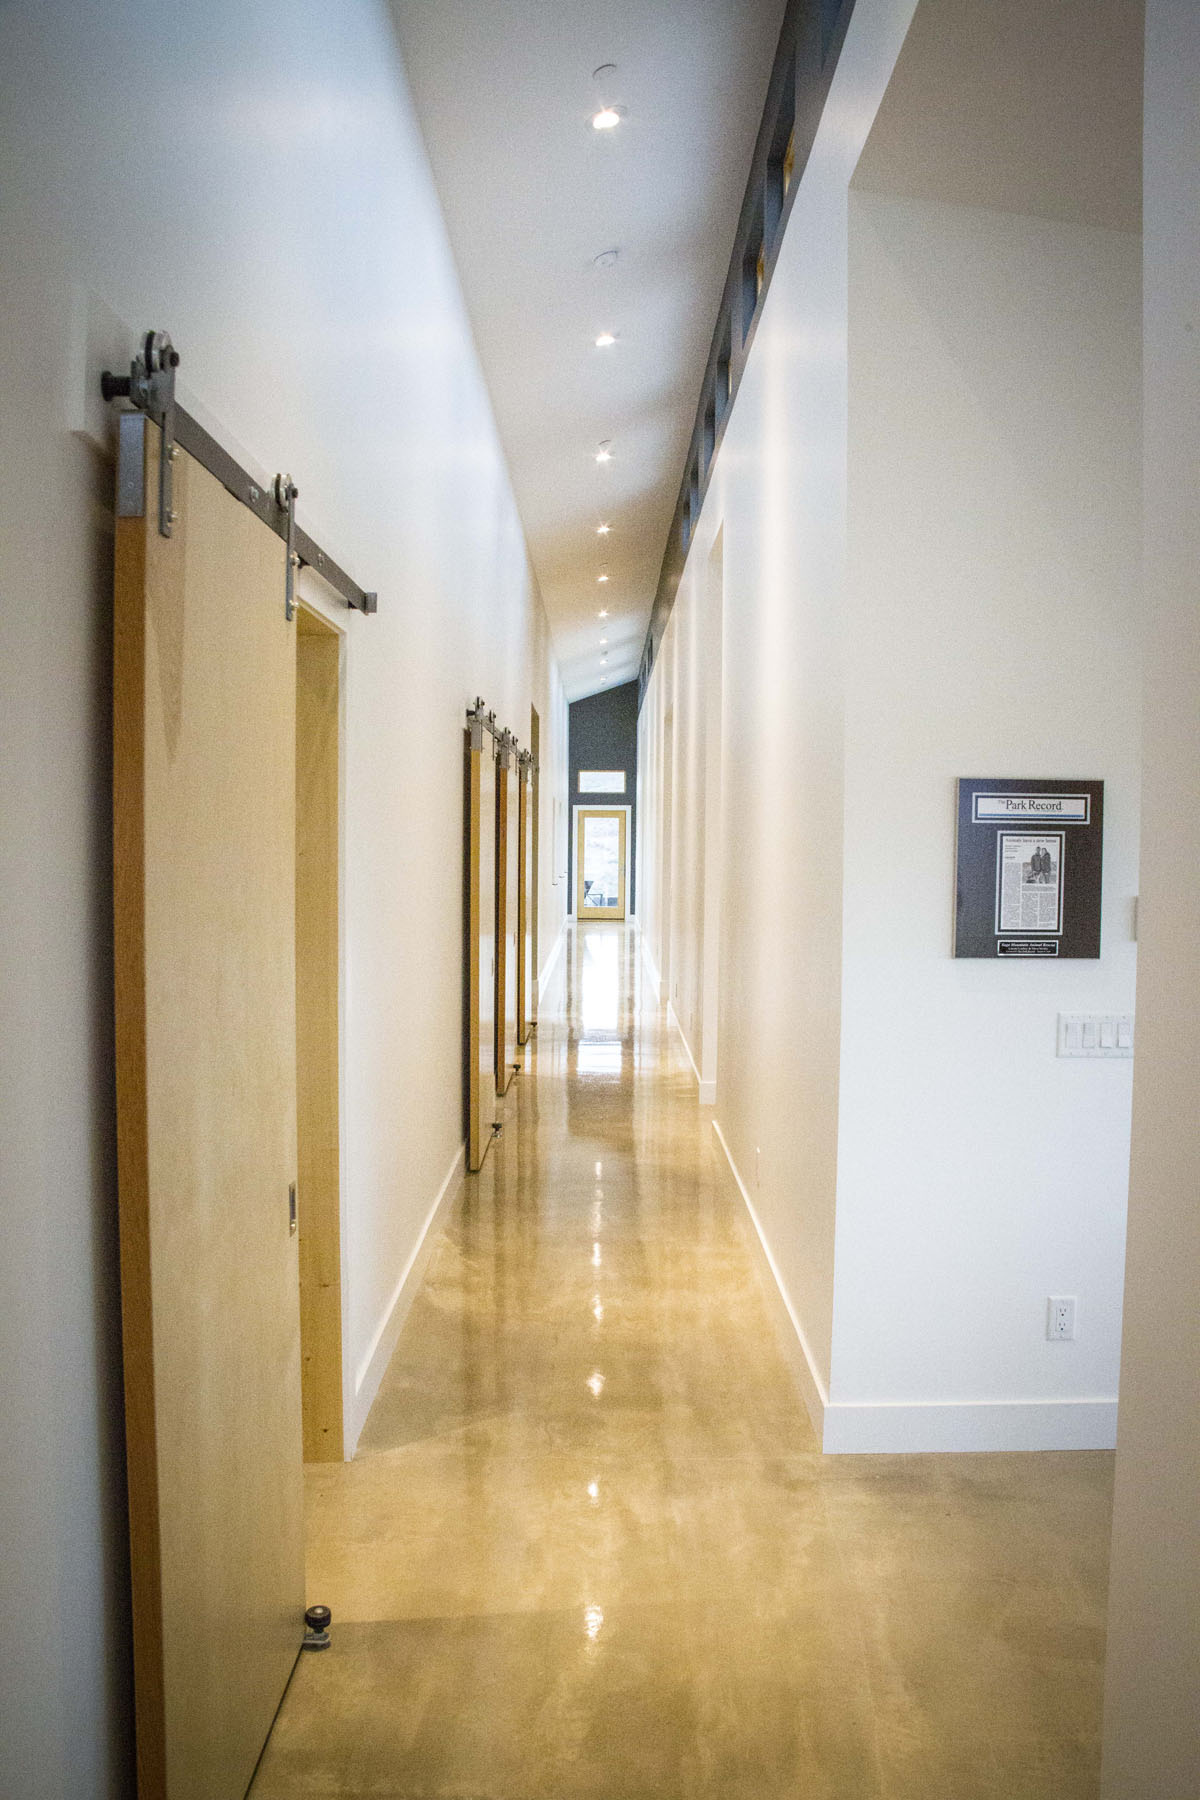 Modern home interior with white walls, polished concrete floors, and sliding barn doors.